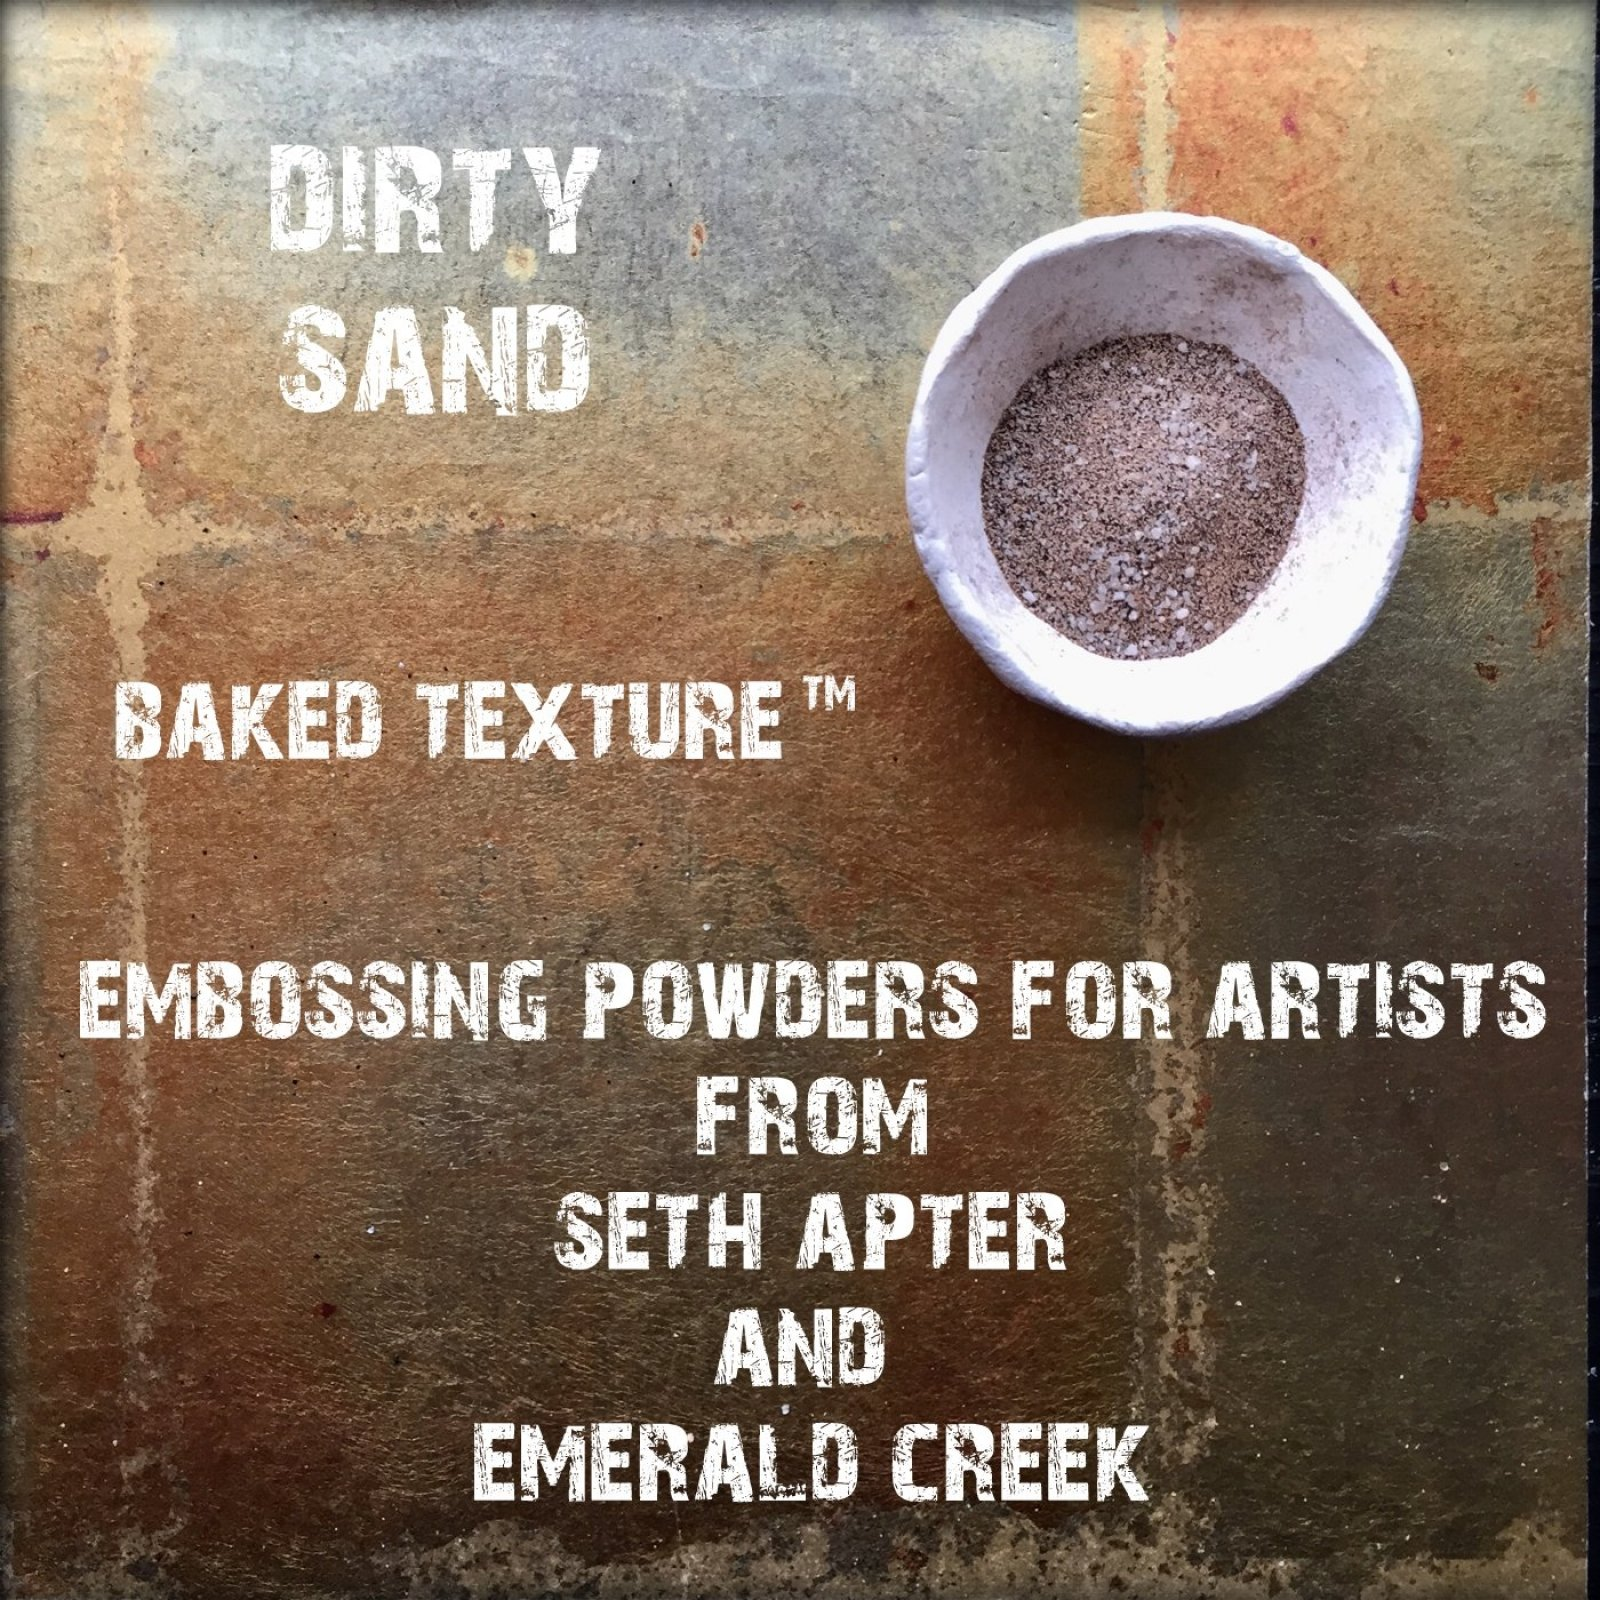 DIRTY SAND 17G - BAKED TEXTURE EMBOSSING POWDER